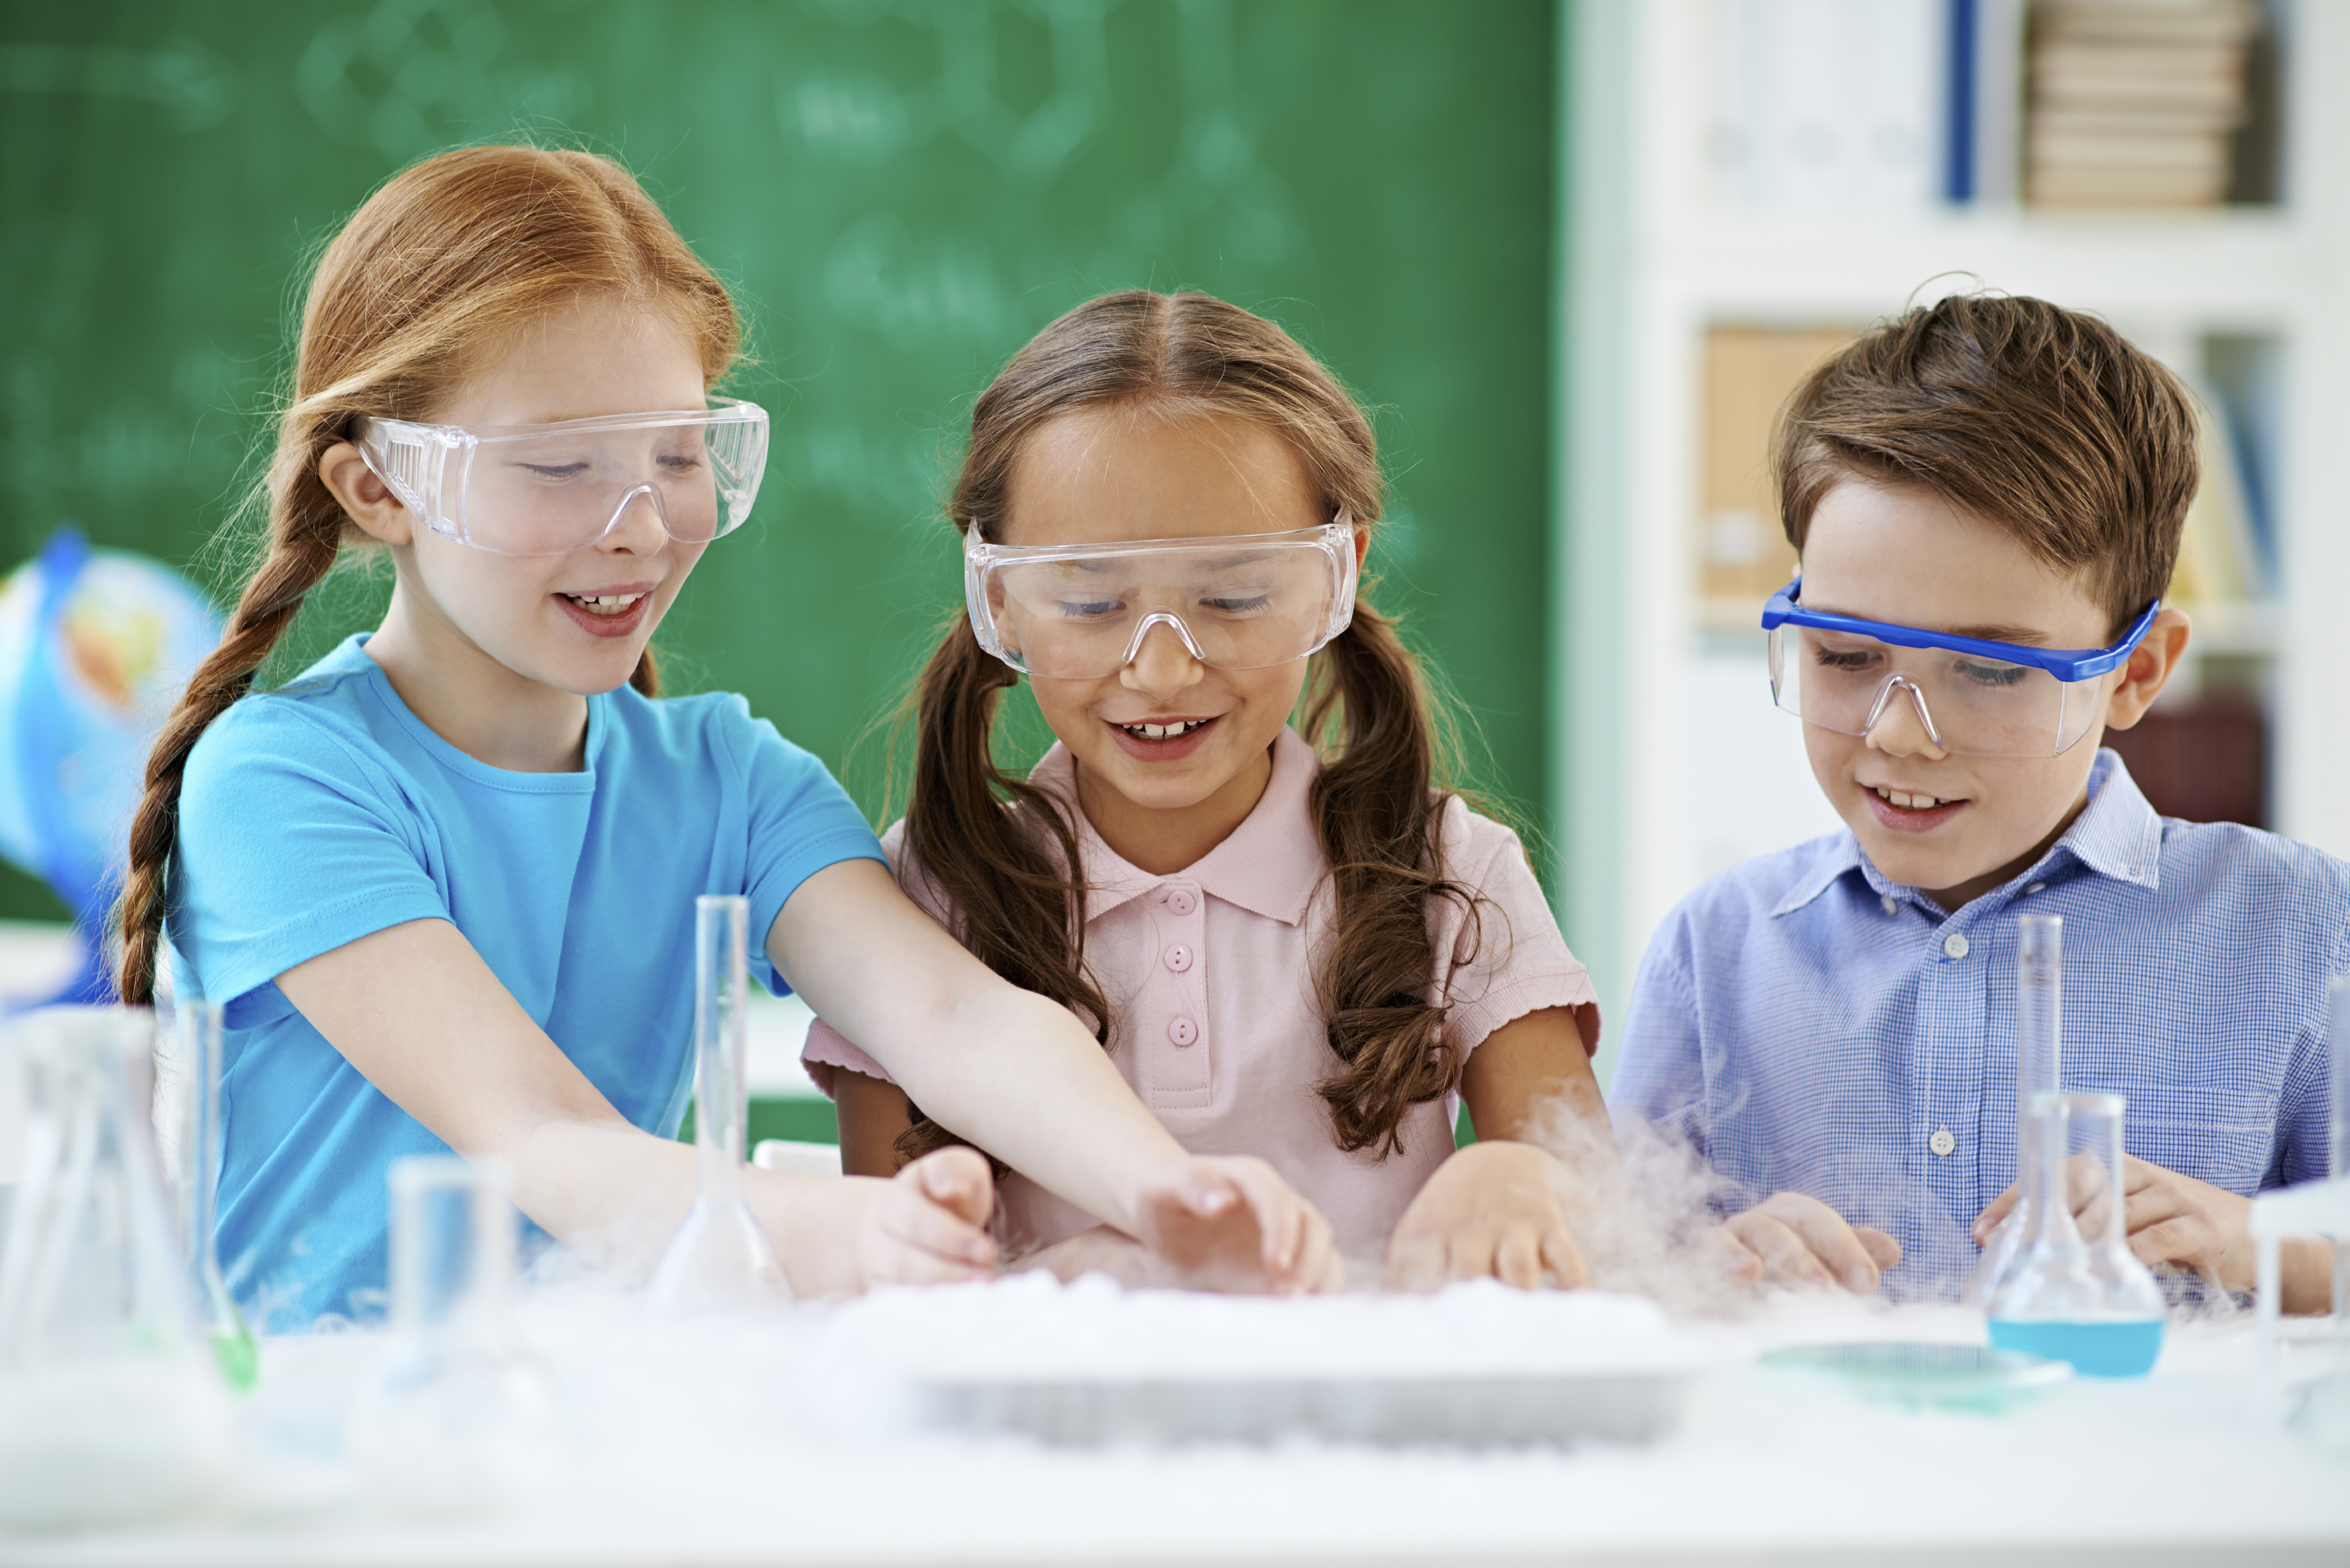 Elementary students wearing safety glasses working on science